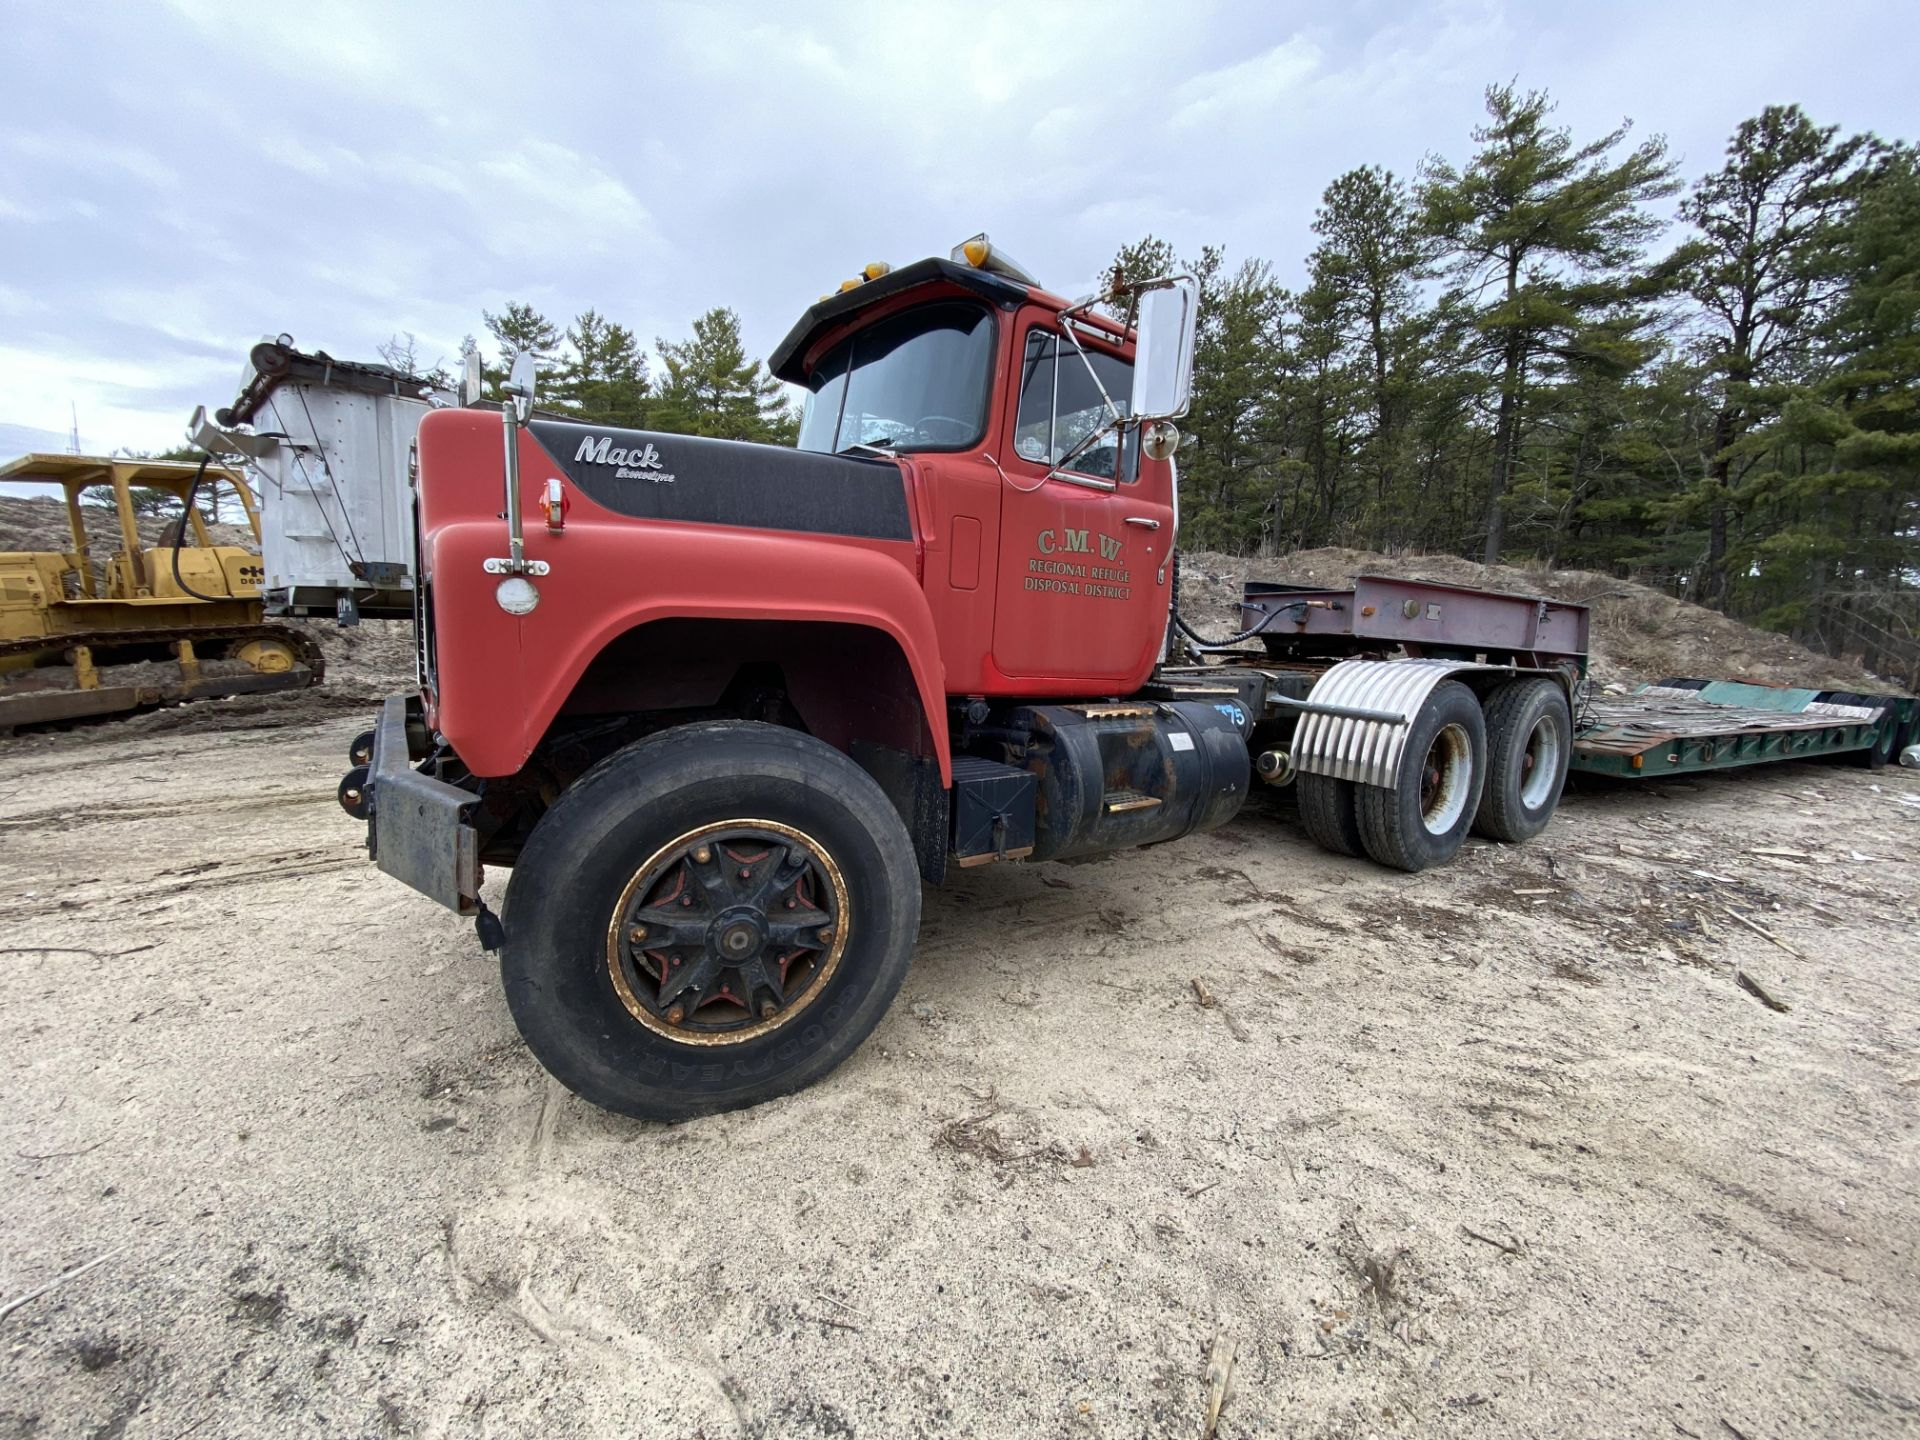 1986 Mack RD688SX Tandem Axle Tractor VIN 1M2P143Y8GA004351, Meter Reads 301,625 Miles, Day Cab, - Image 2 of 22